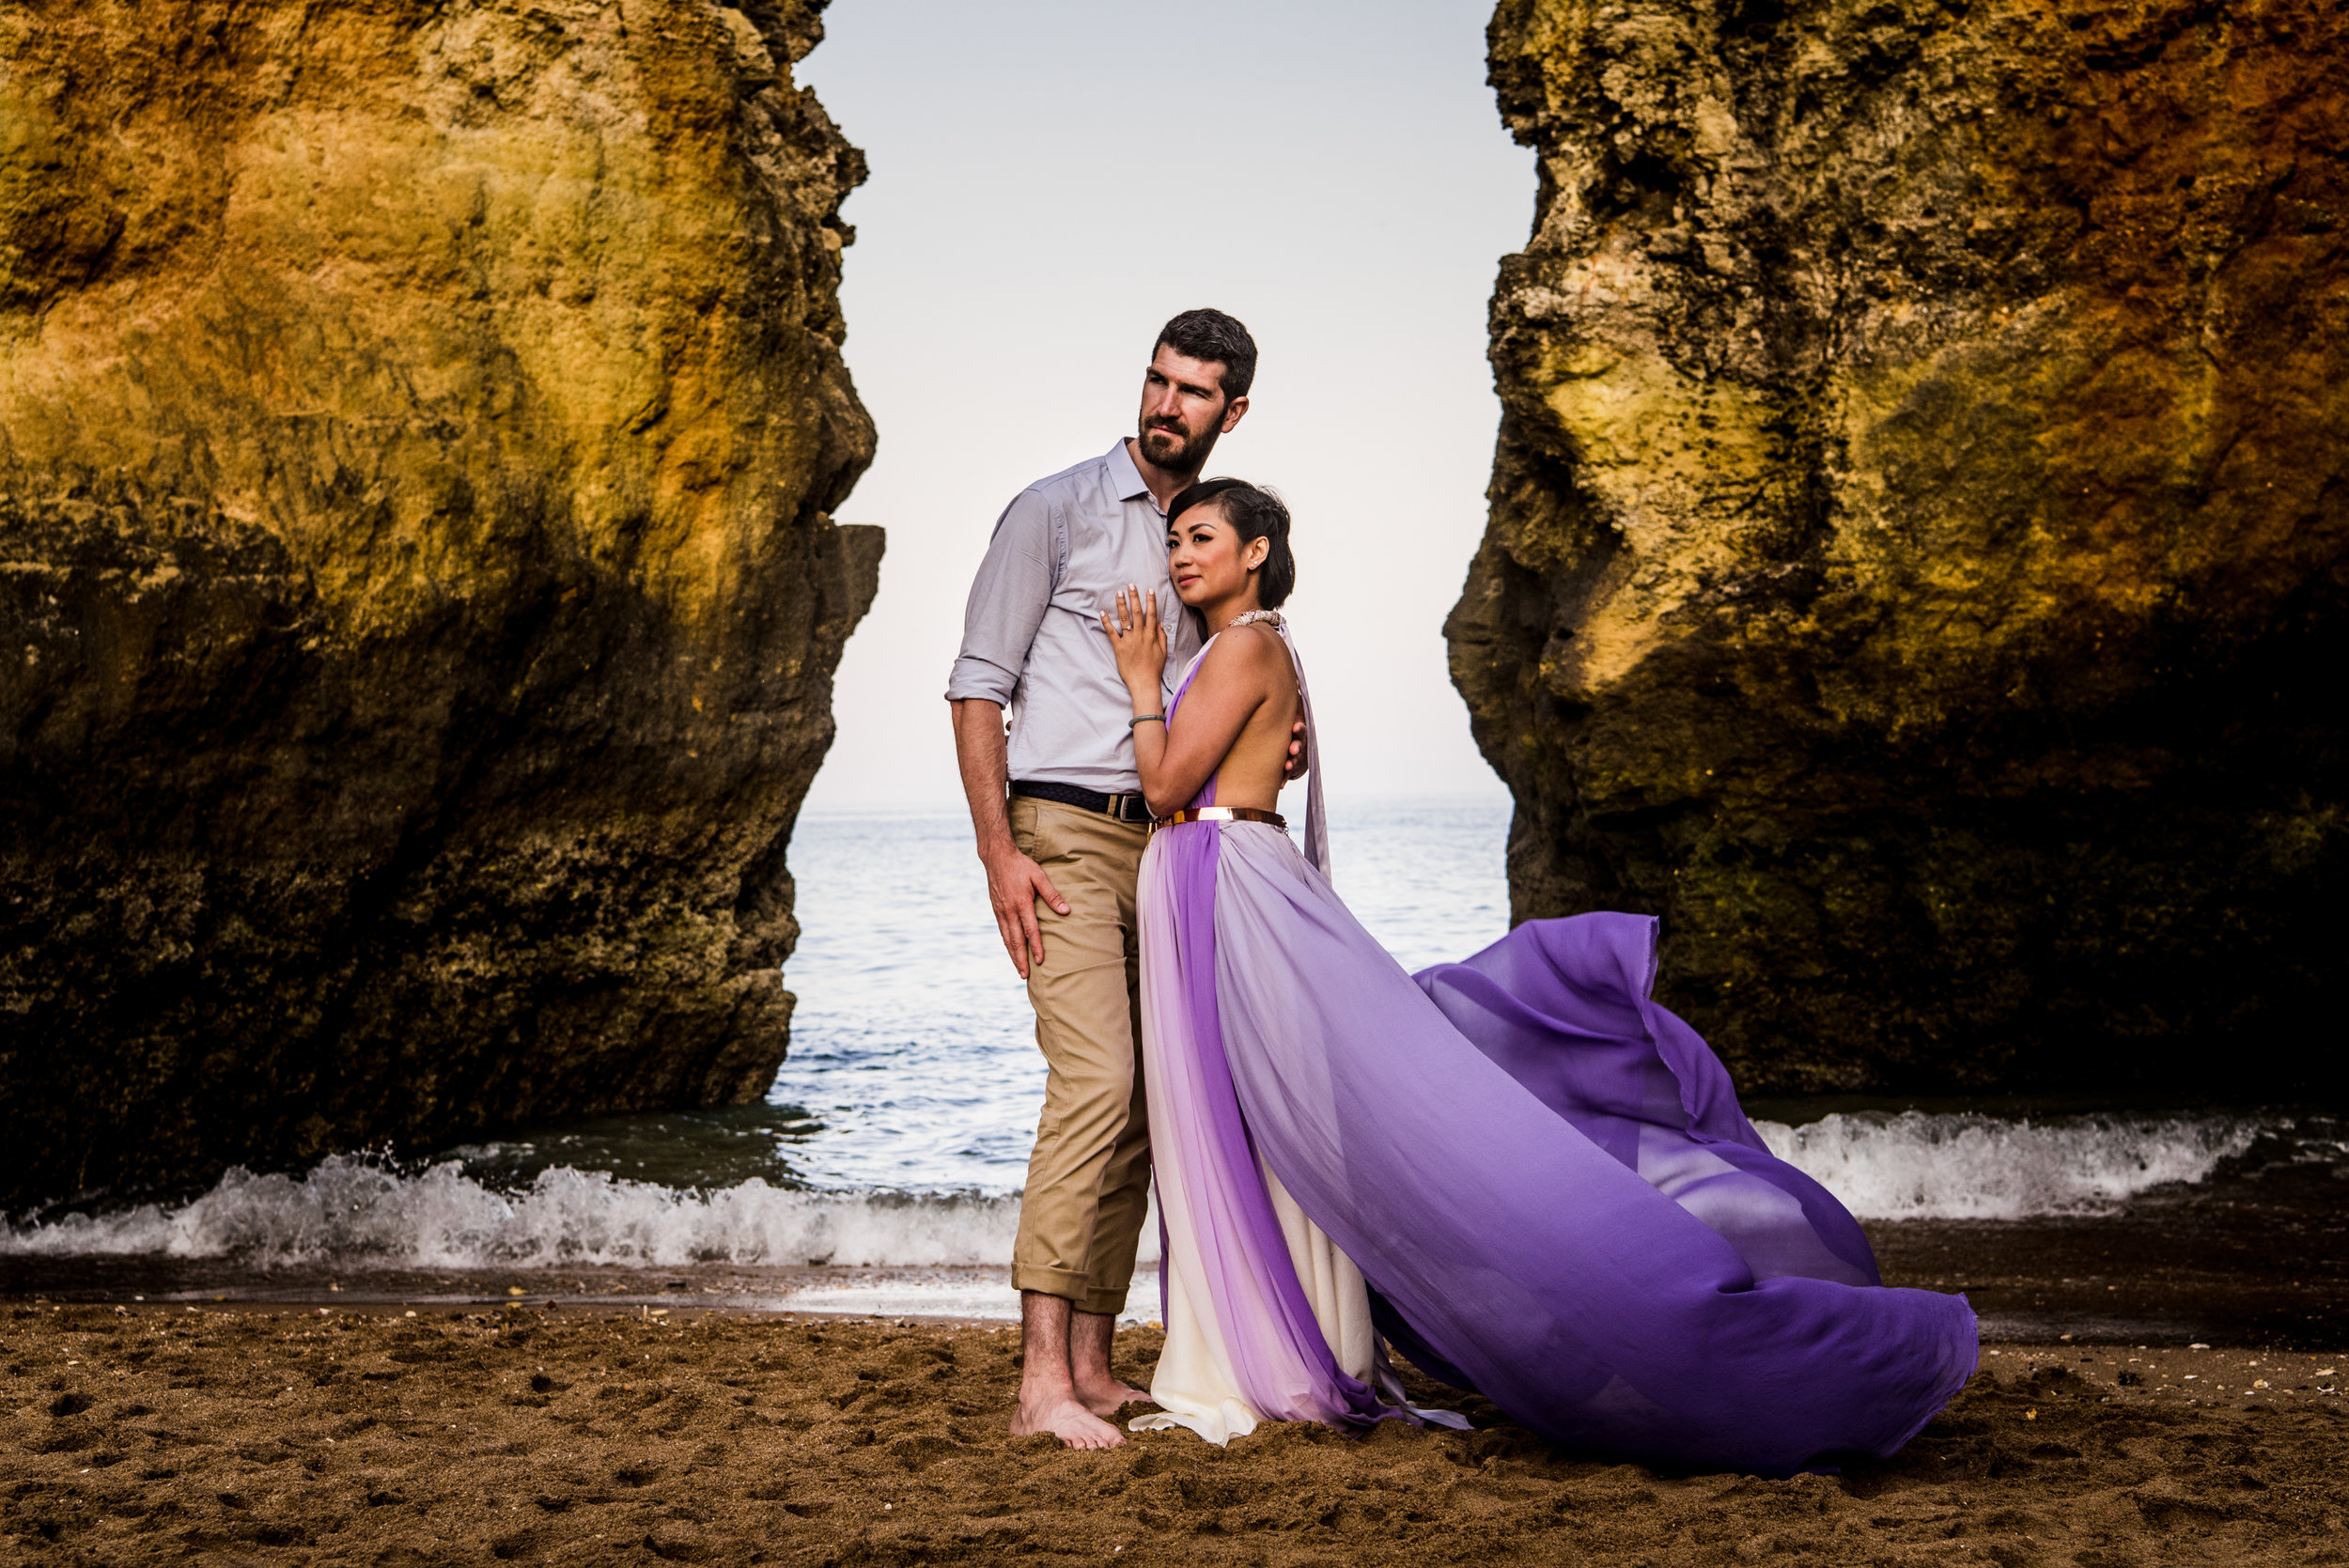 minty-fo-engagement-final-20.jpg